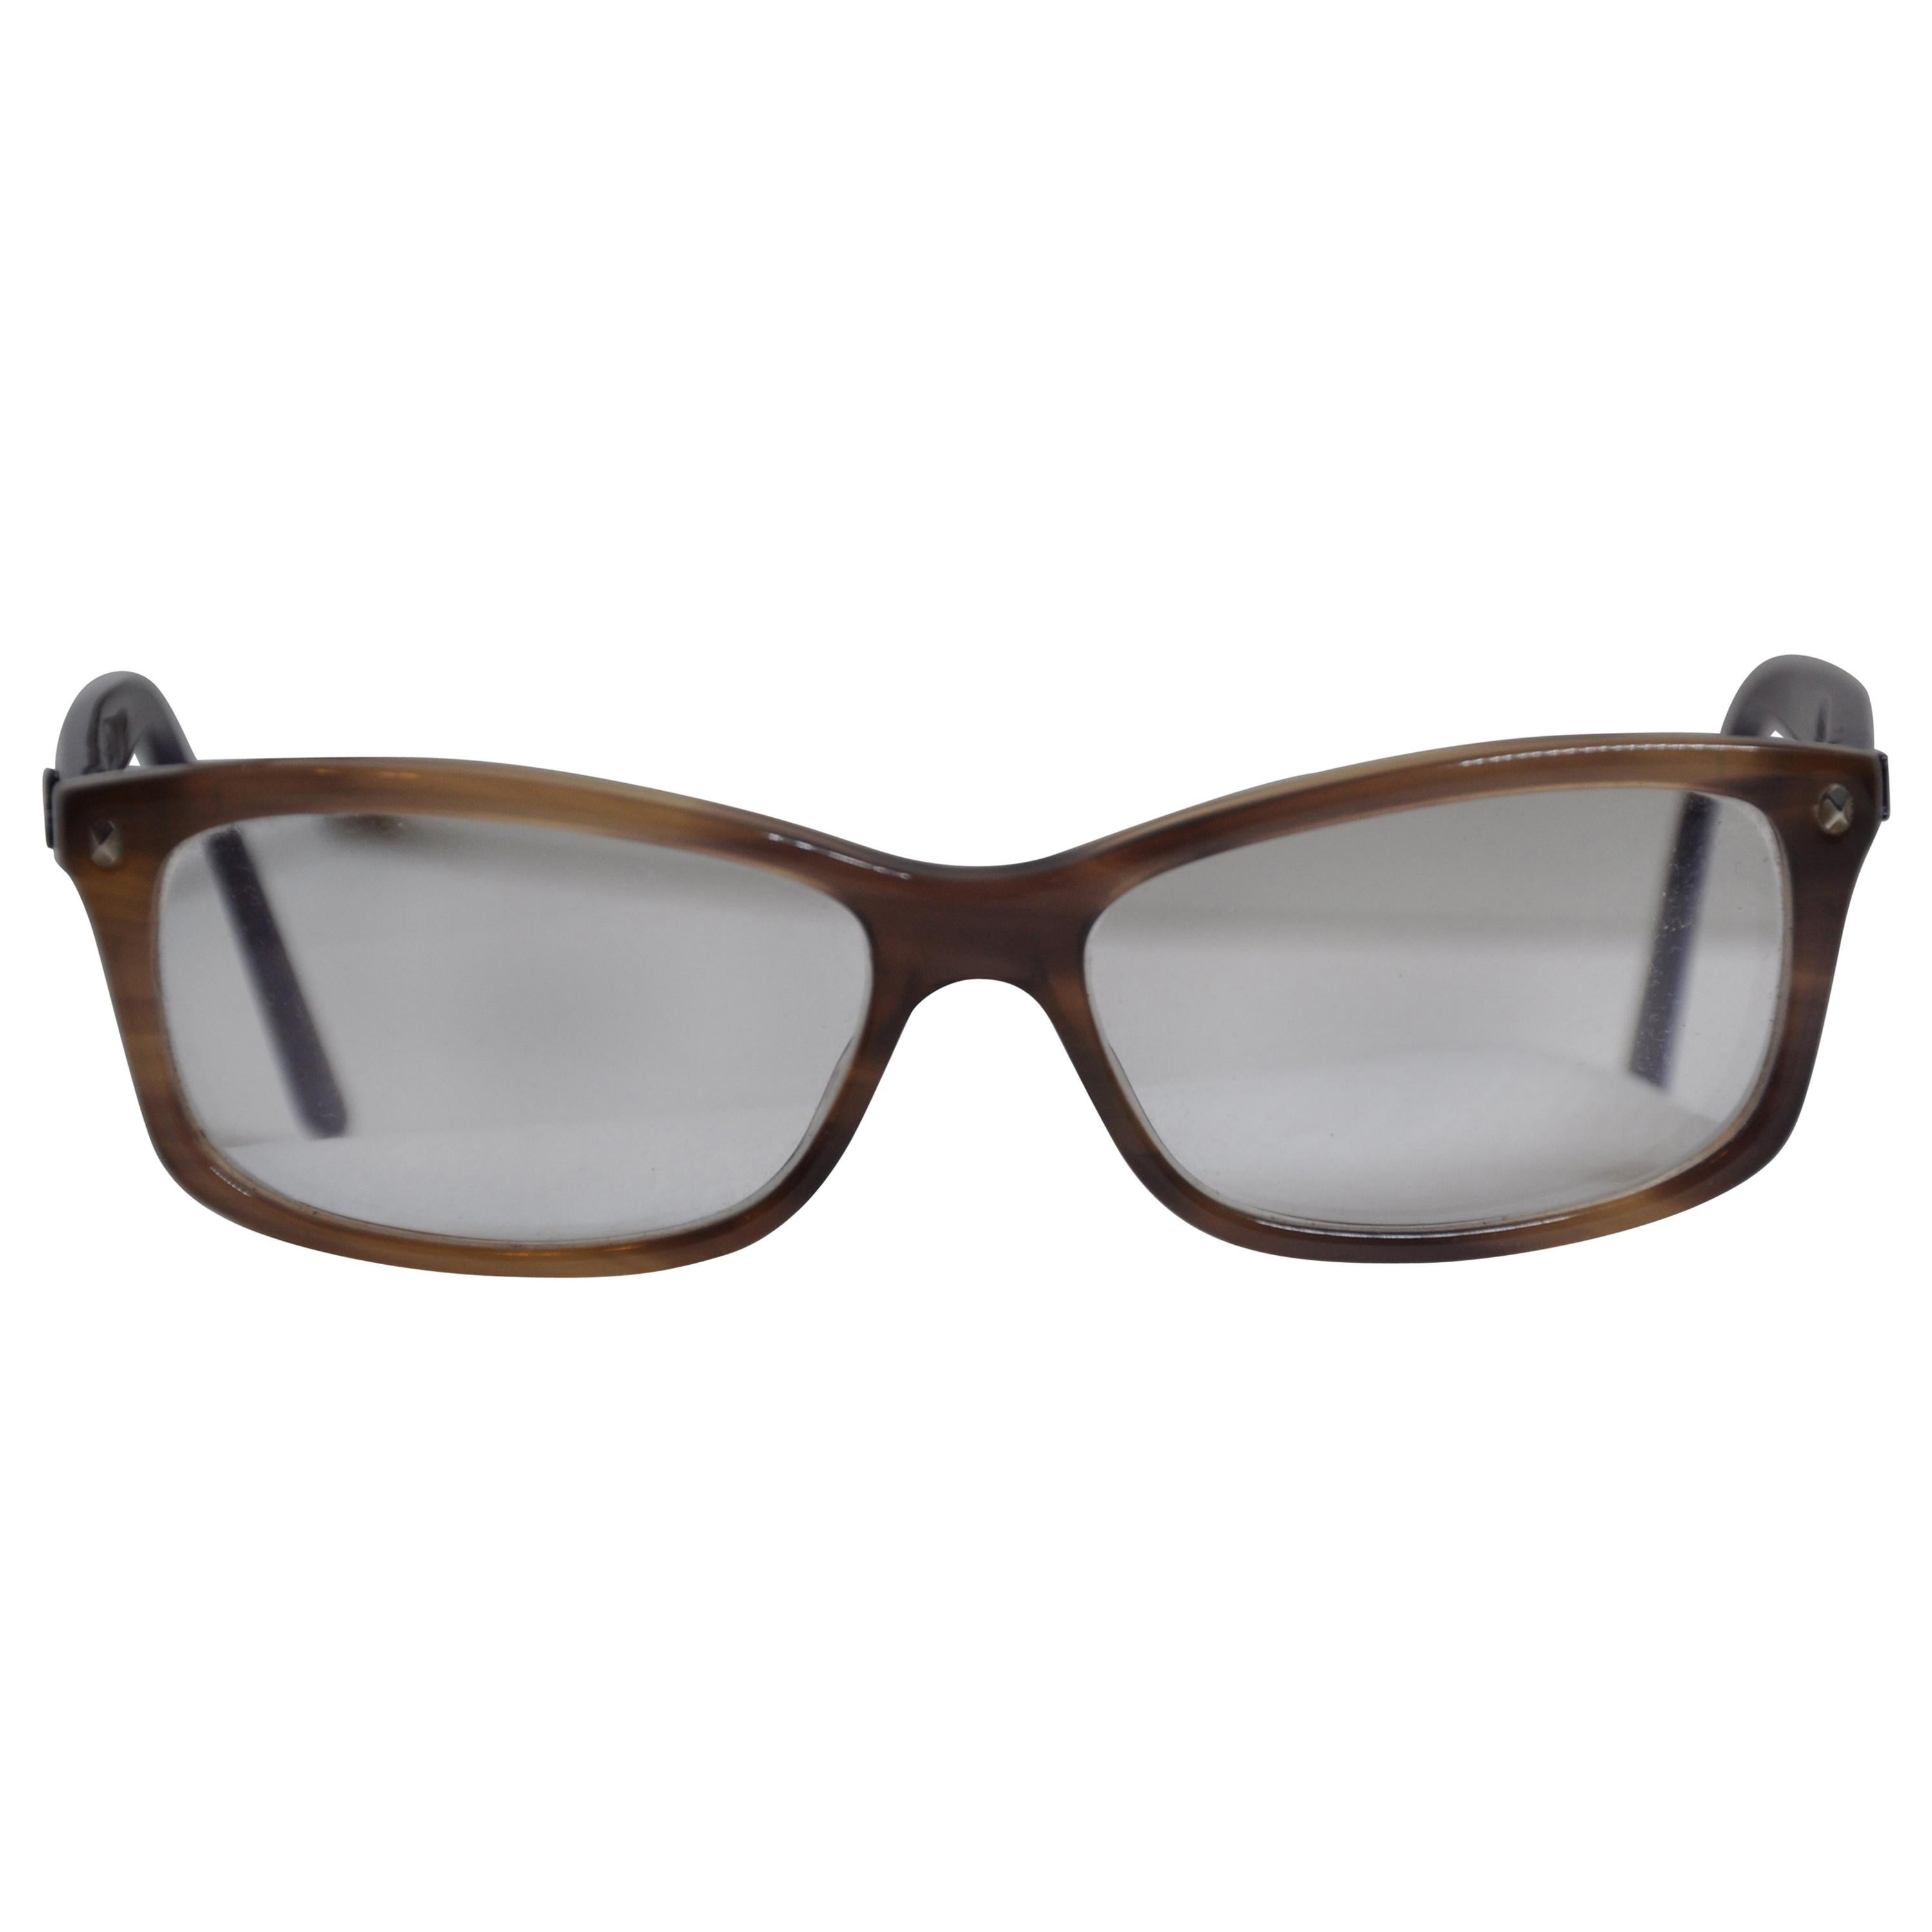 58809cdc8a Vintage Sunglasses For Sale in New York City - 1stdibs